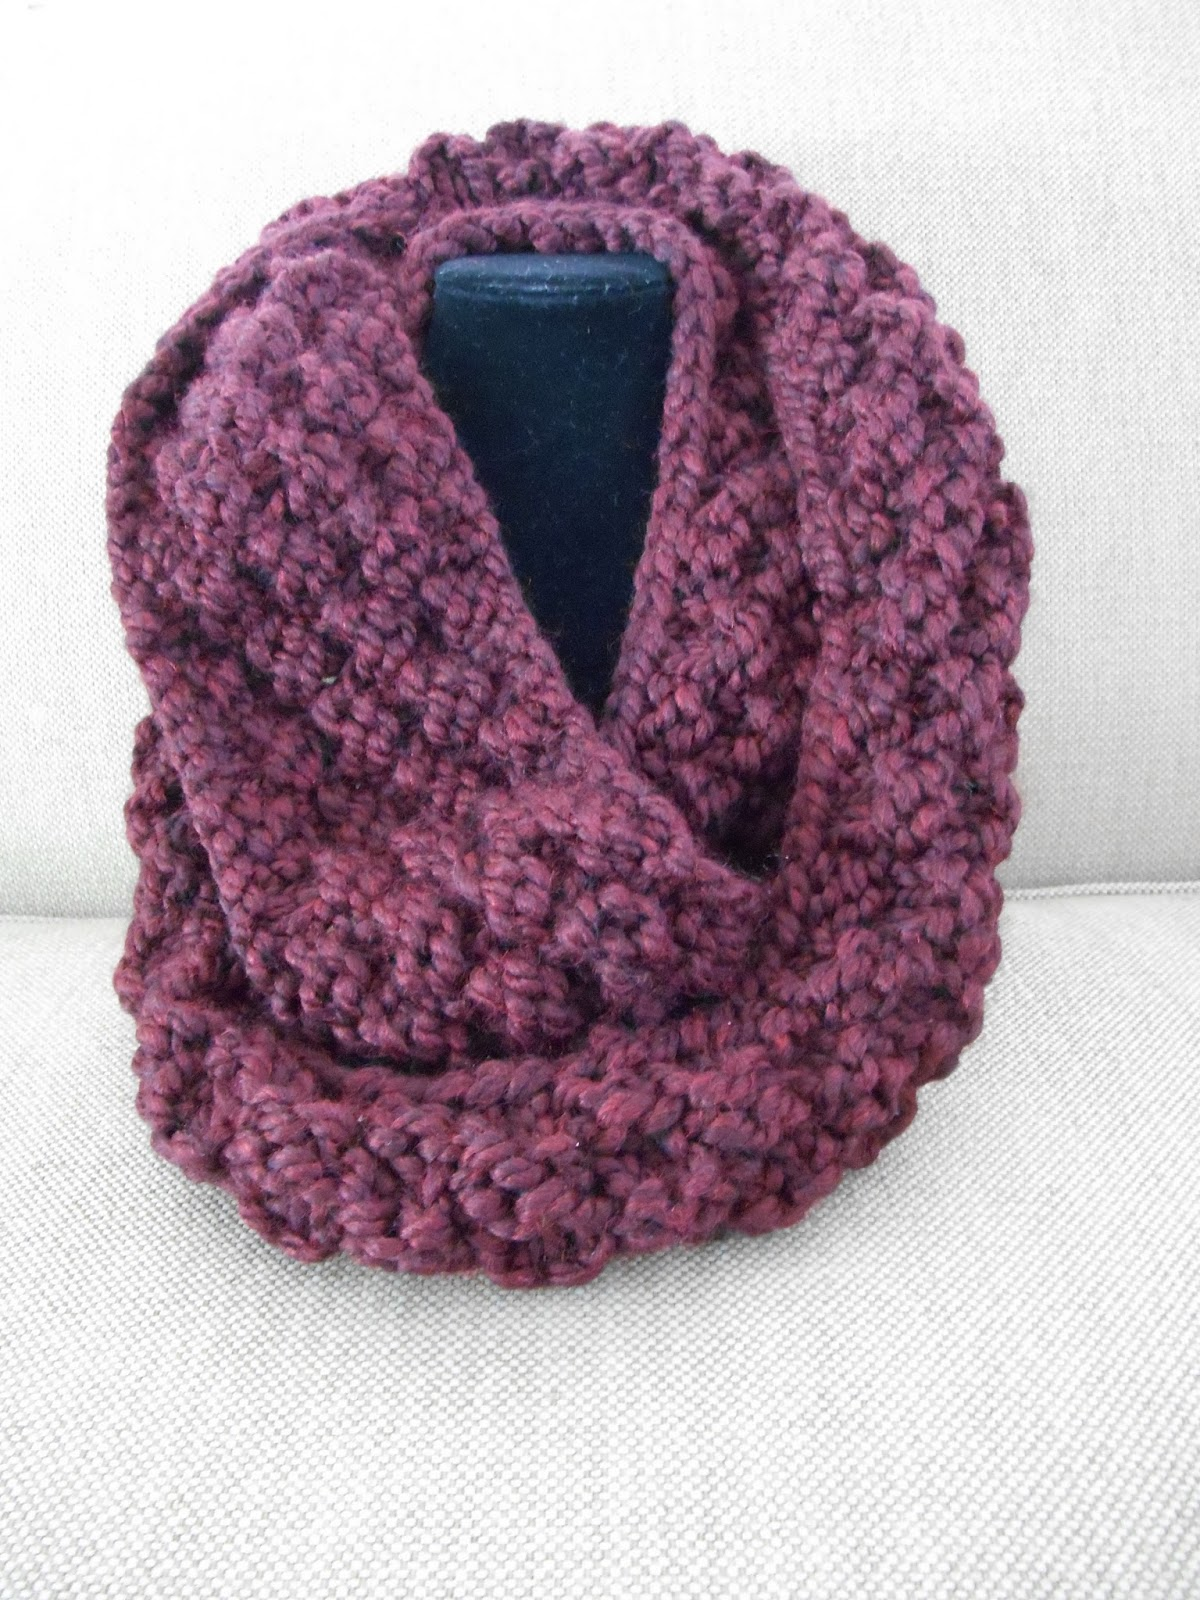 Knitting Patterns Scarf Size 19 Needles : Knitting with Schnapps: Introducing the Neck Nuzzler Infinity Scarf!